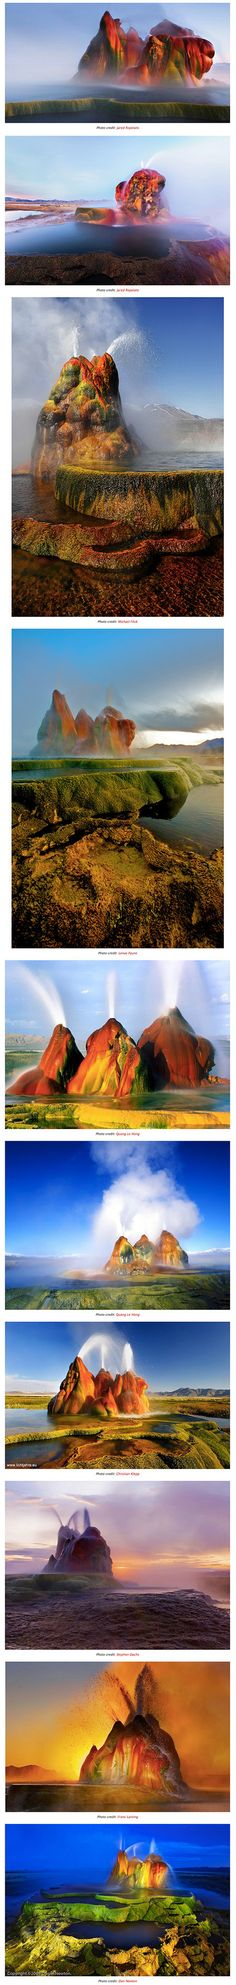 """Fly Geyser (or Fly Ranch Geyser) is a a small geothermal geyser that is located approximately 20 miles north of Gerlach, in Washoe County, Nevada. Called """"one of the most beautiful sights in Nevada,"""" the geyser is a little-known tourist attraction even to Nevada residents."""